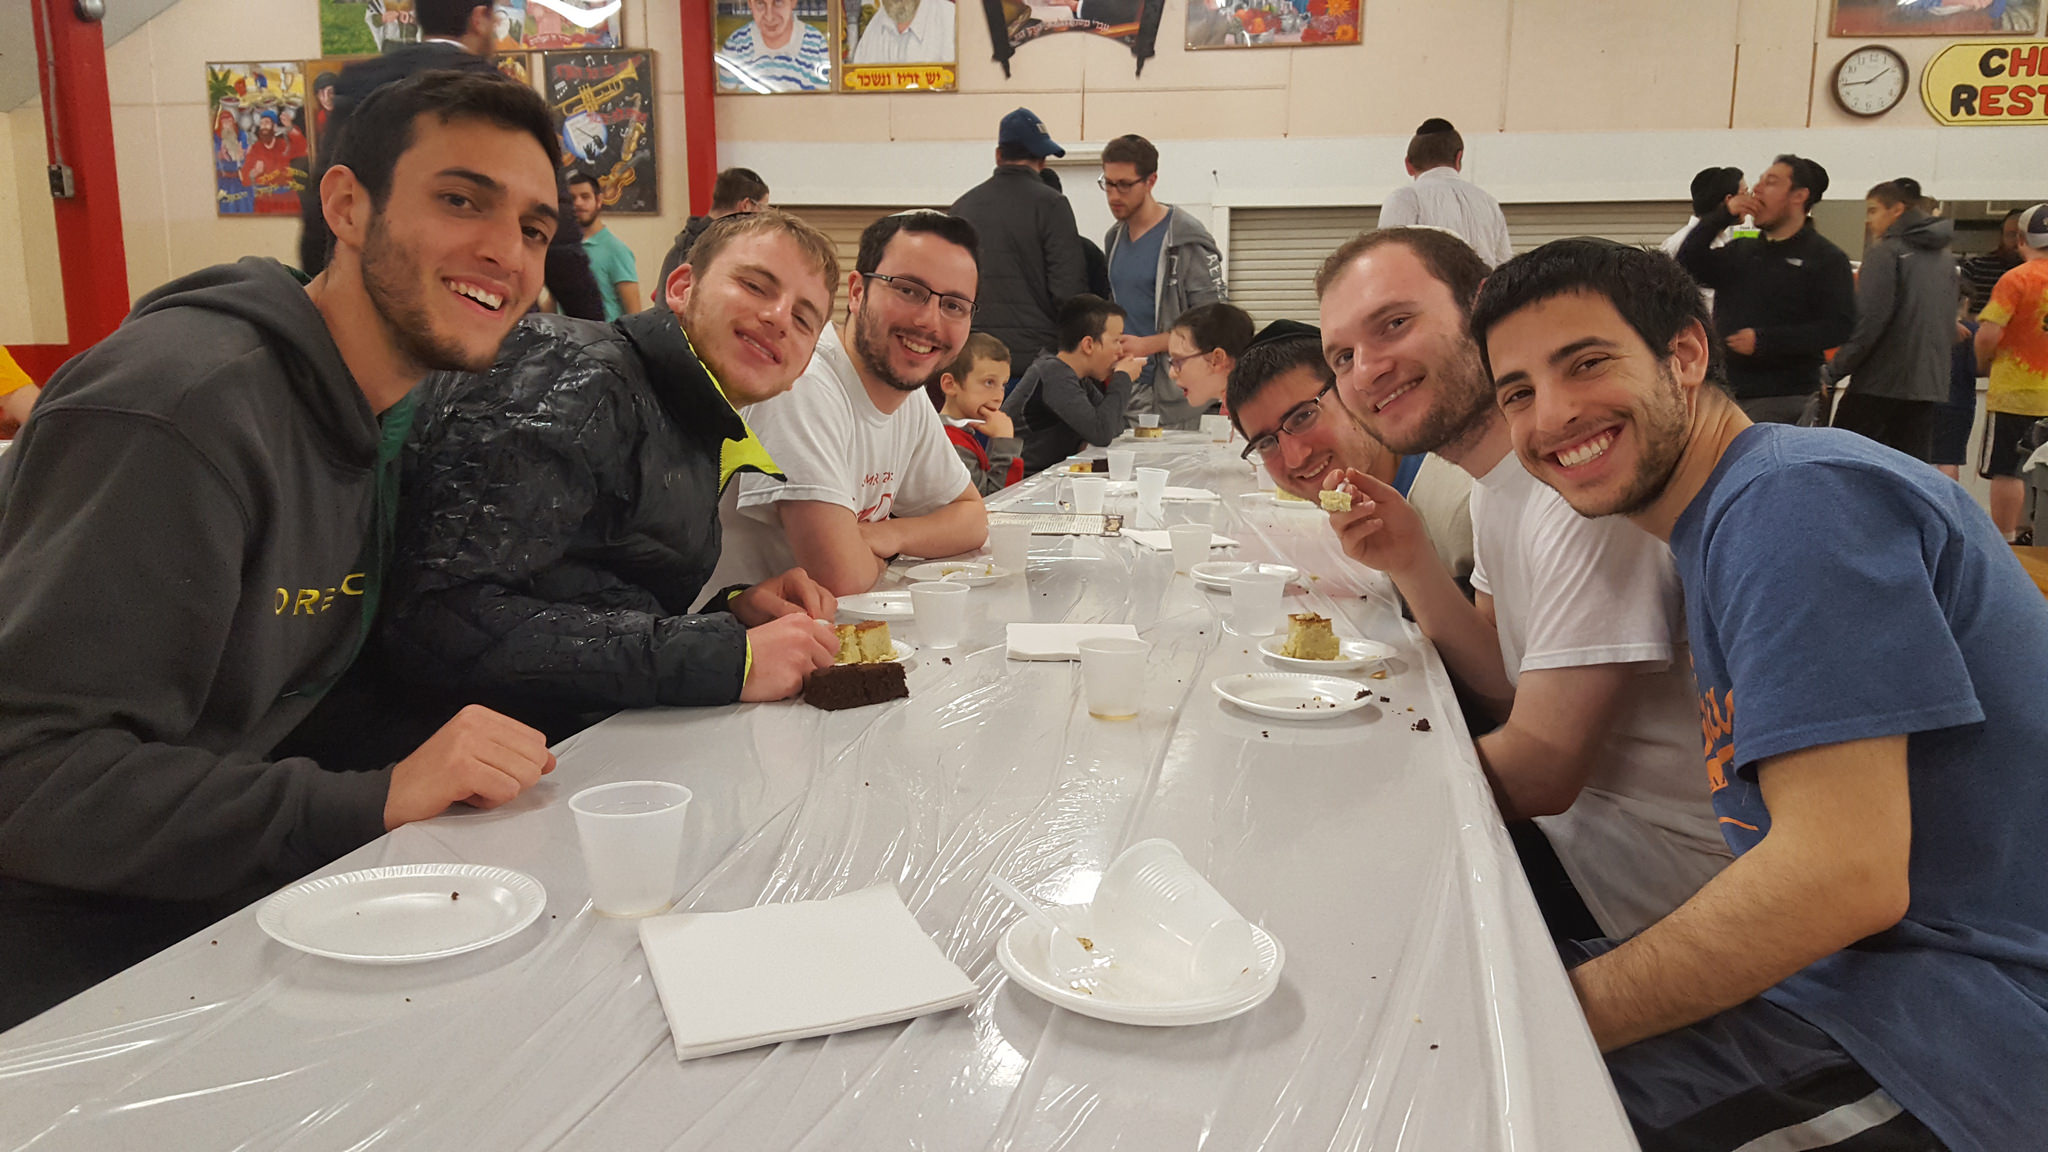 Students at LCM smile during LCM's annual Shabbaton.